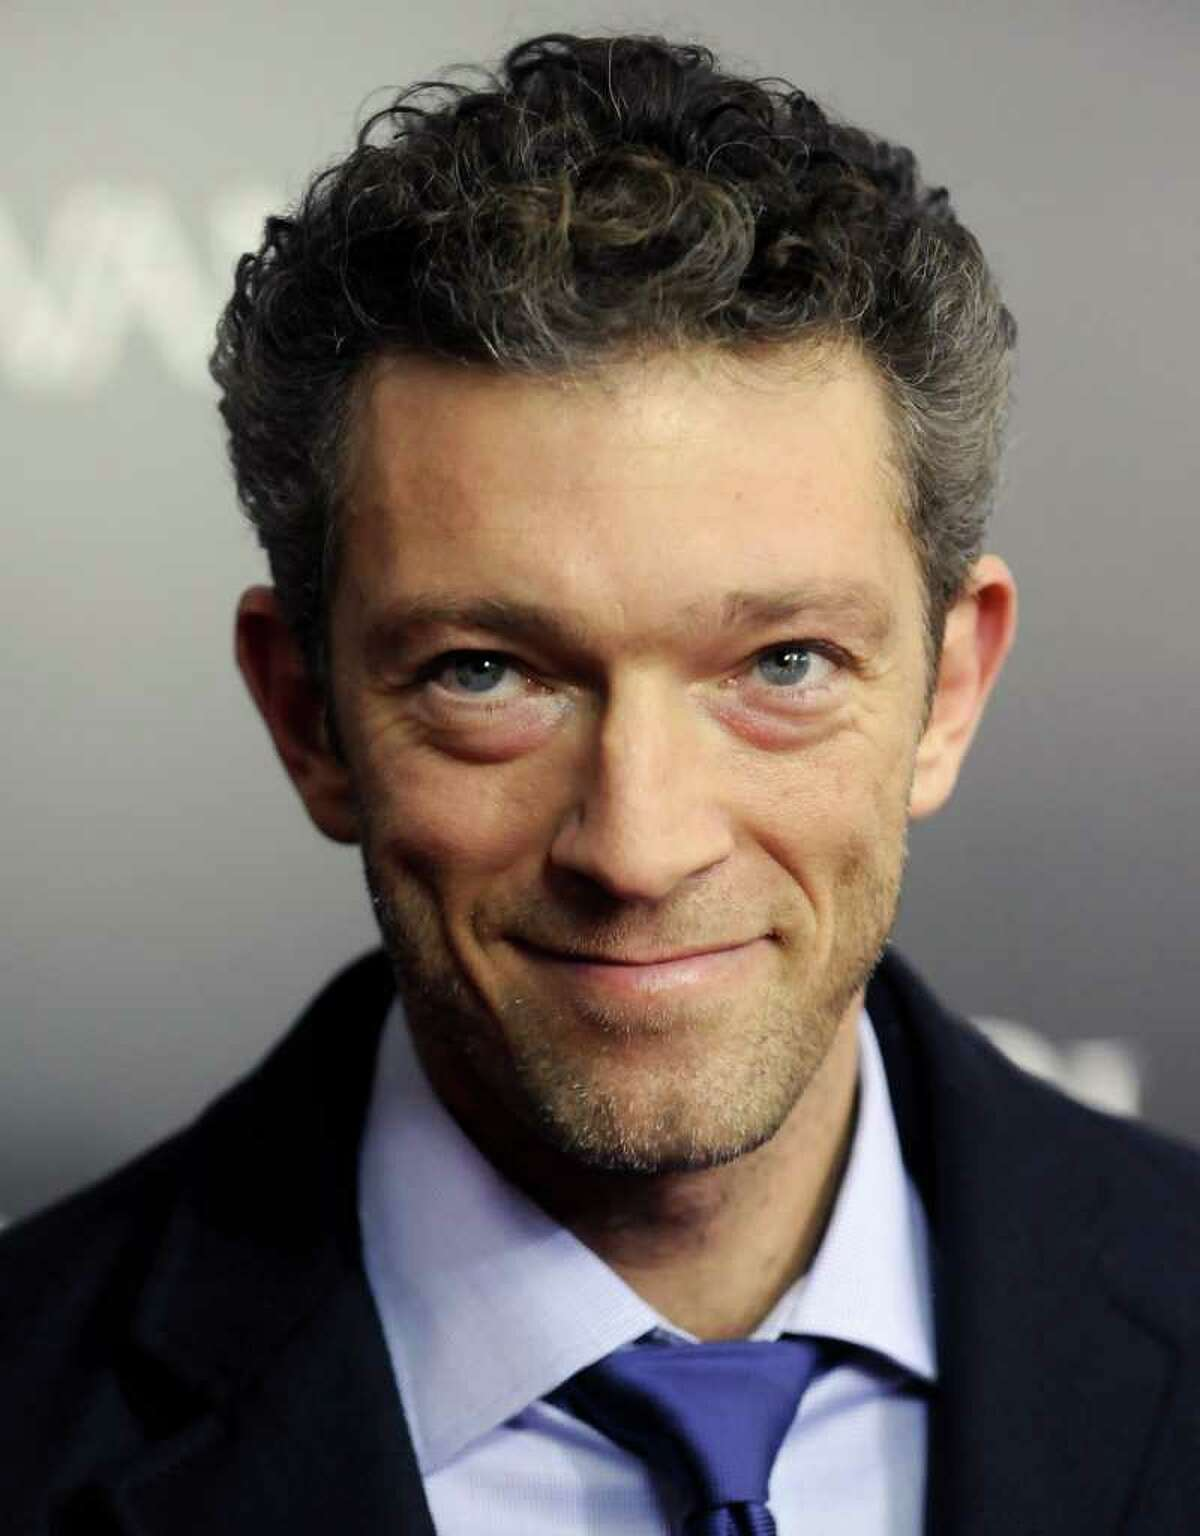 Actor Vincent Cassel attends the premiere of 'Black Swan' at the Ziegfeld Theatre on Tuesday, Nov. 30, 2010 in New York. (AP Photo/Evan Agostini)